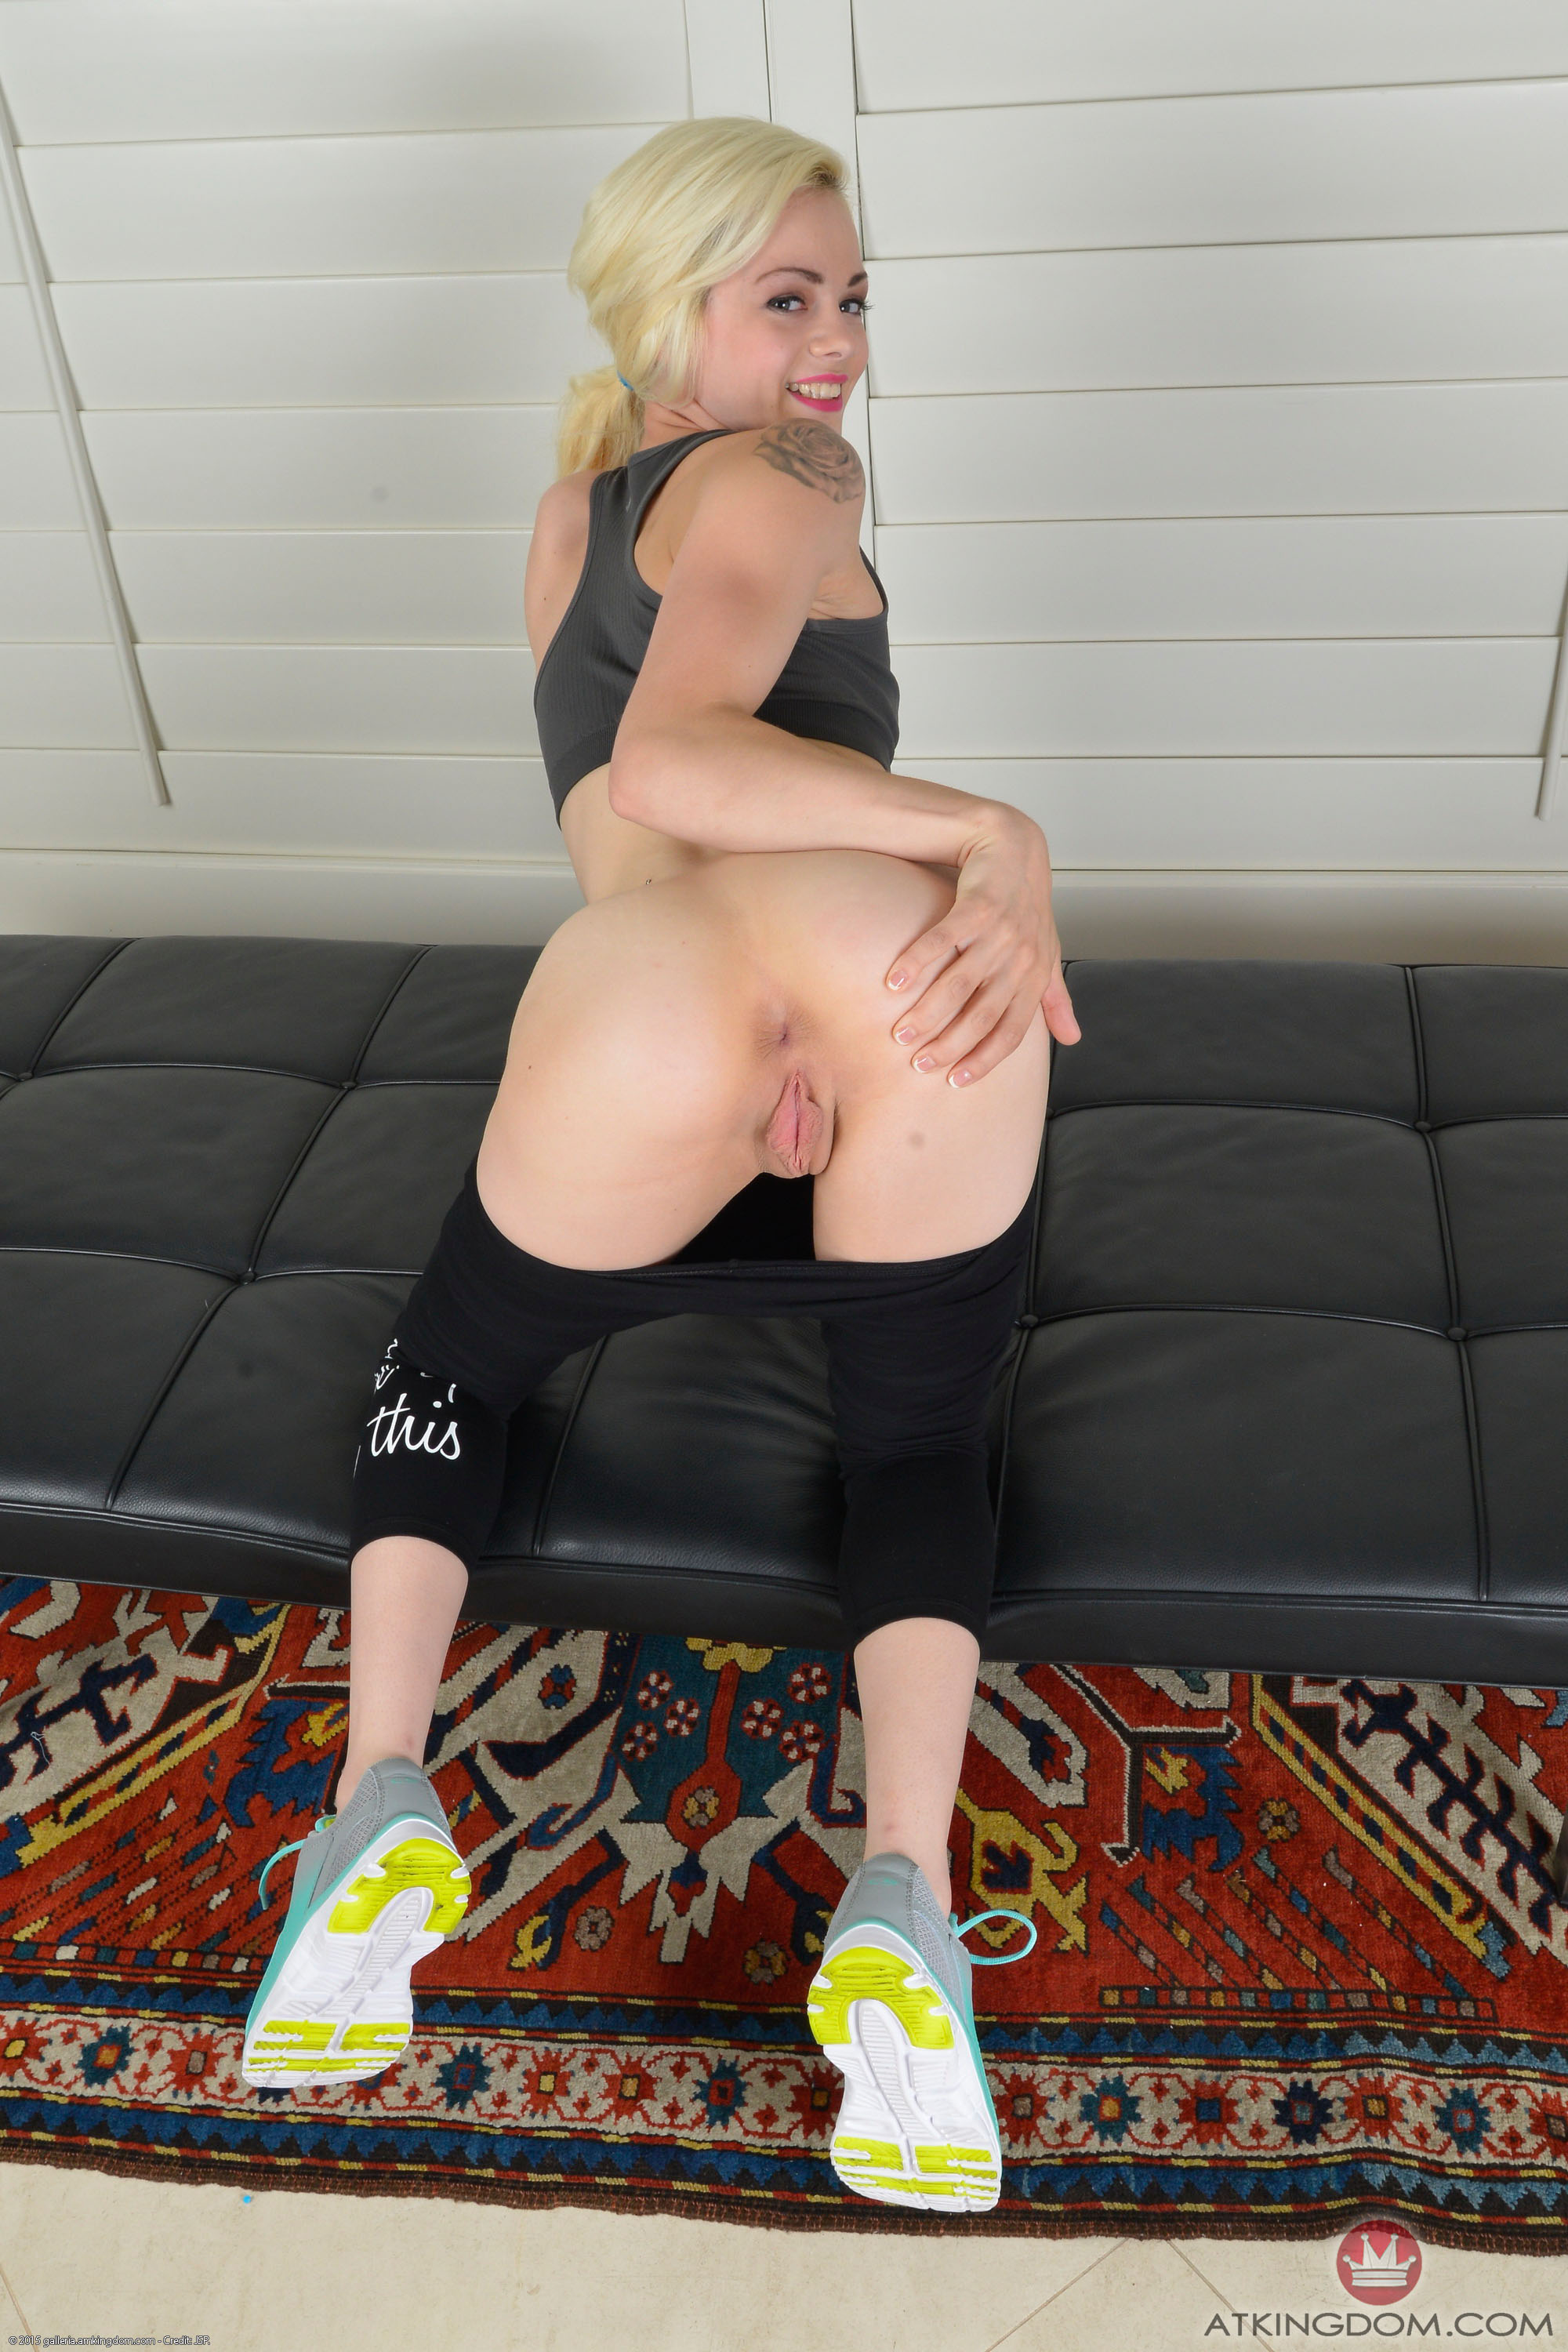 Els sexual position Monroe the